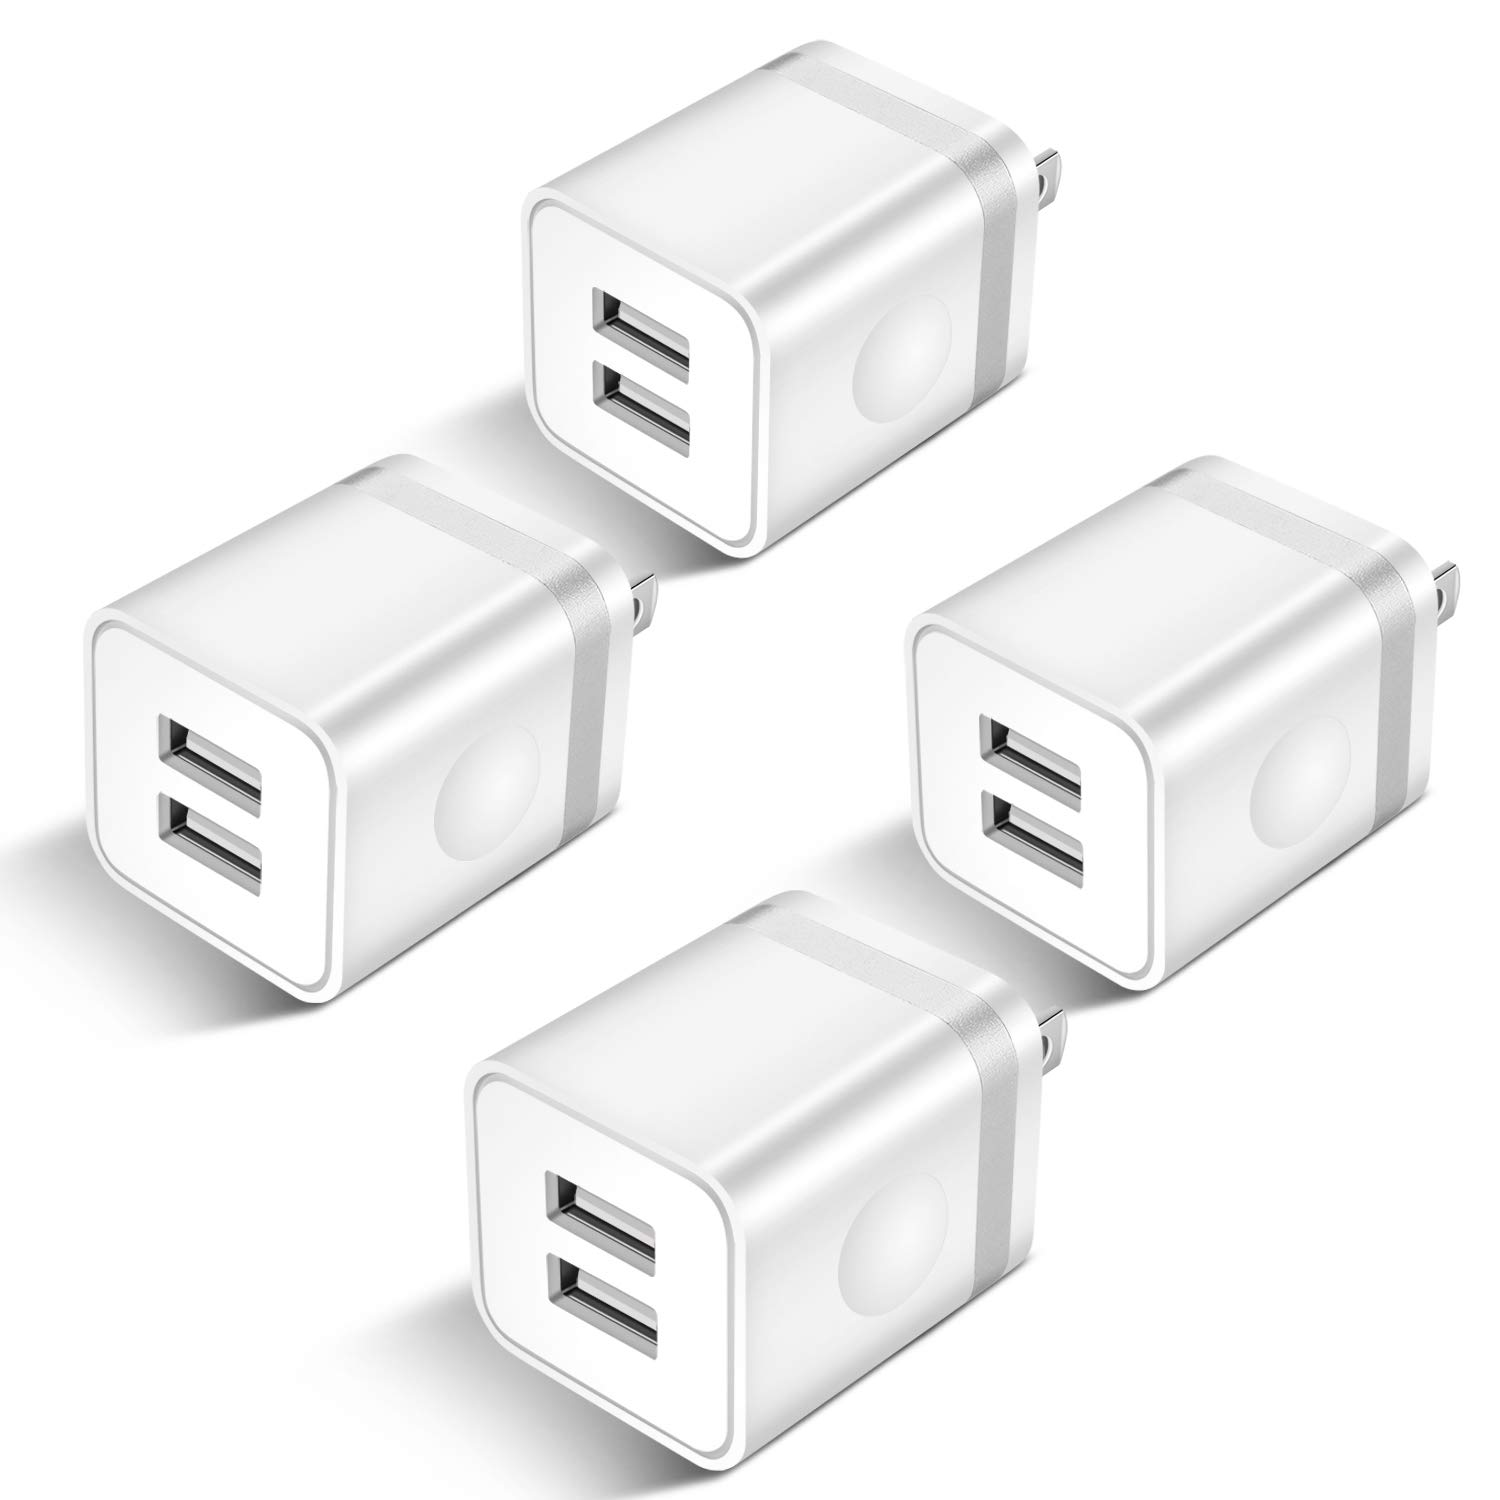 ARCCRA USB Wall Charger, 4-Pack 2.1Amp 2-Port USB Plug Power Charger Adapter Charging Block Cube Compatible with iPhone 11/11 Pro/11 Pro Max/Xs/XR/X/8/7/6 Plus/SE, Samsung, LG, Moto, Android Phones